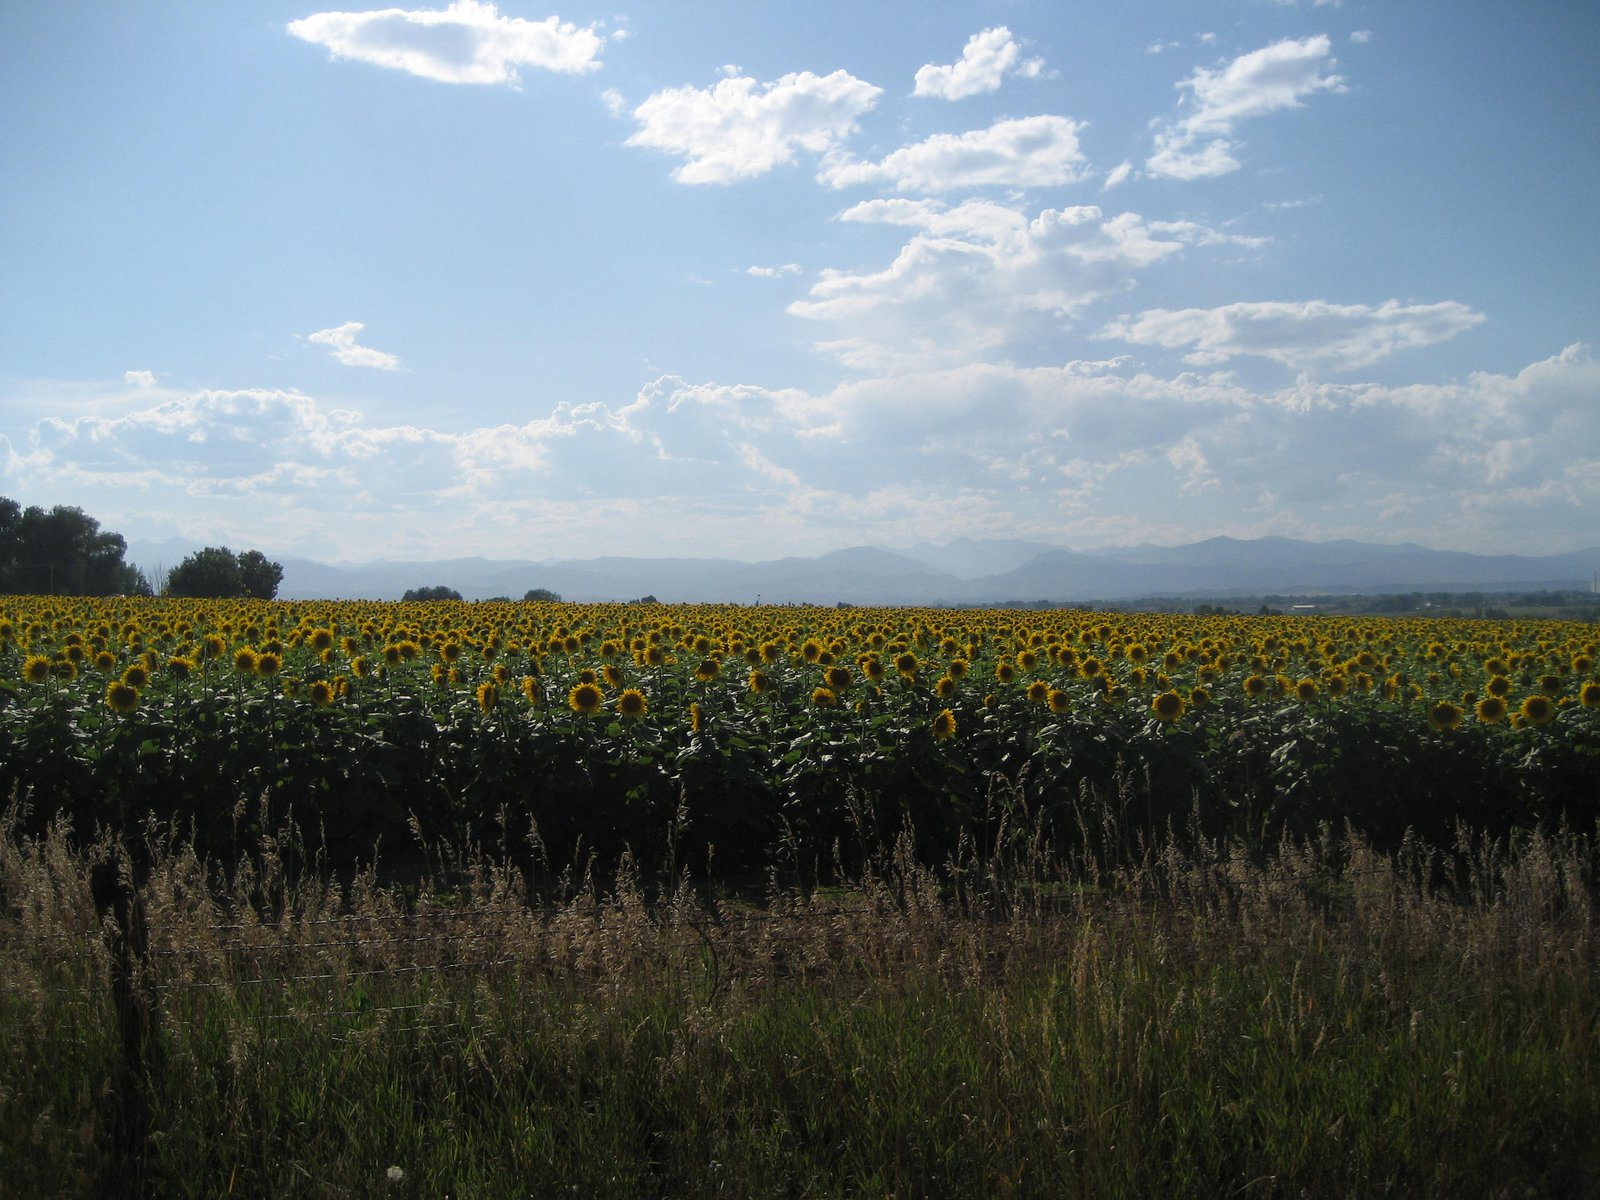 Sunflowers outside of Fort Collins